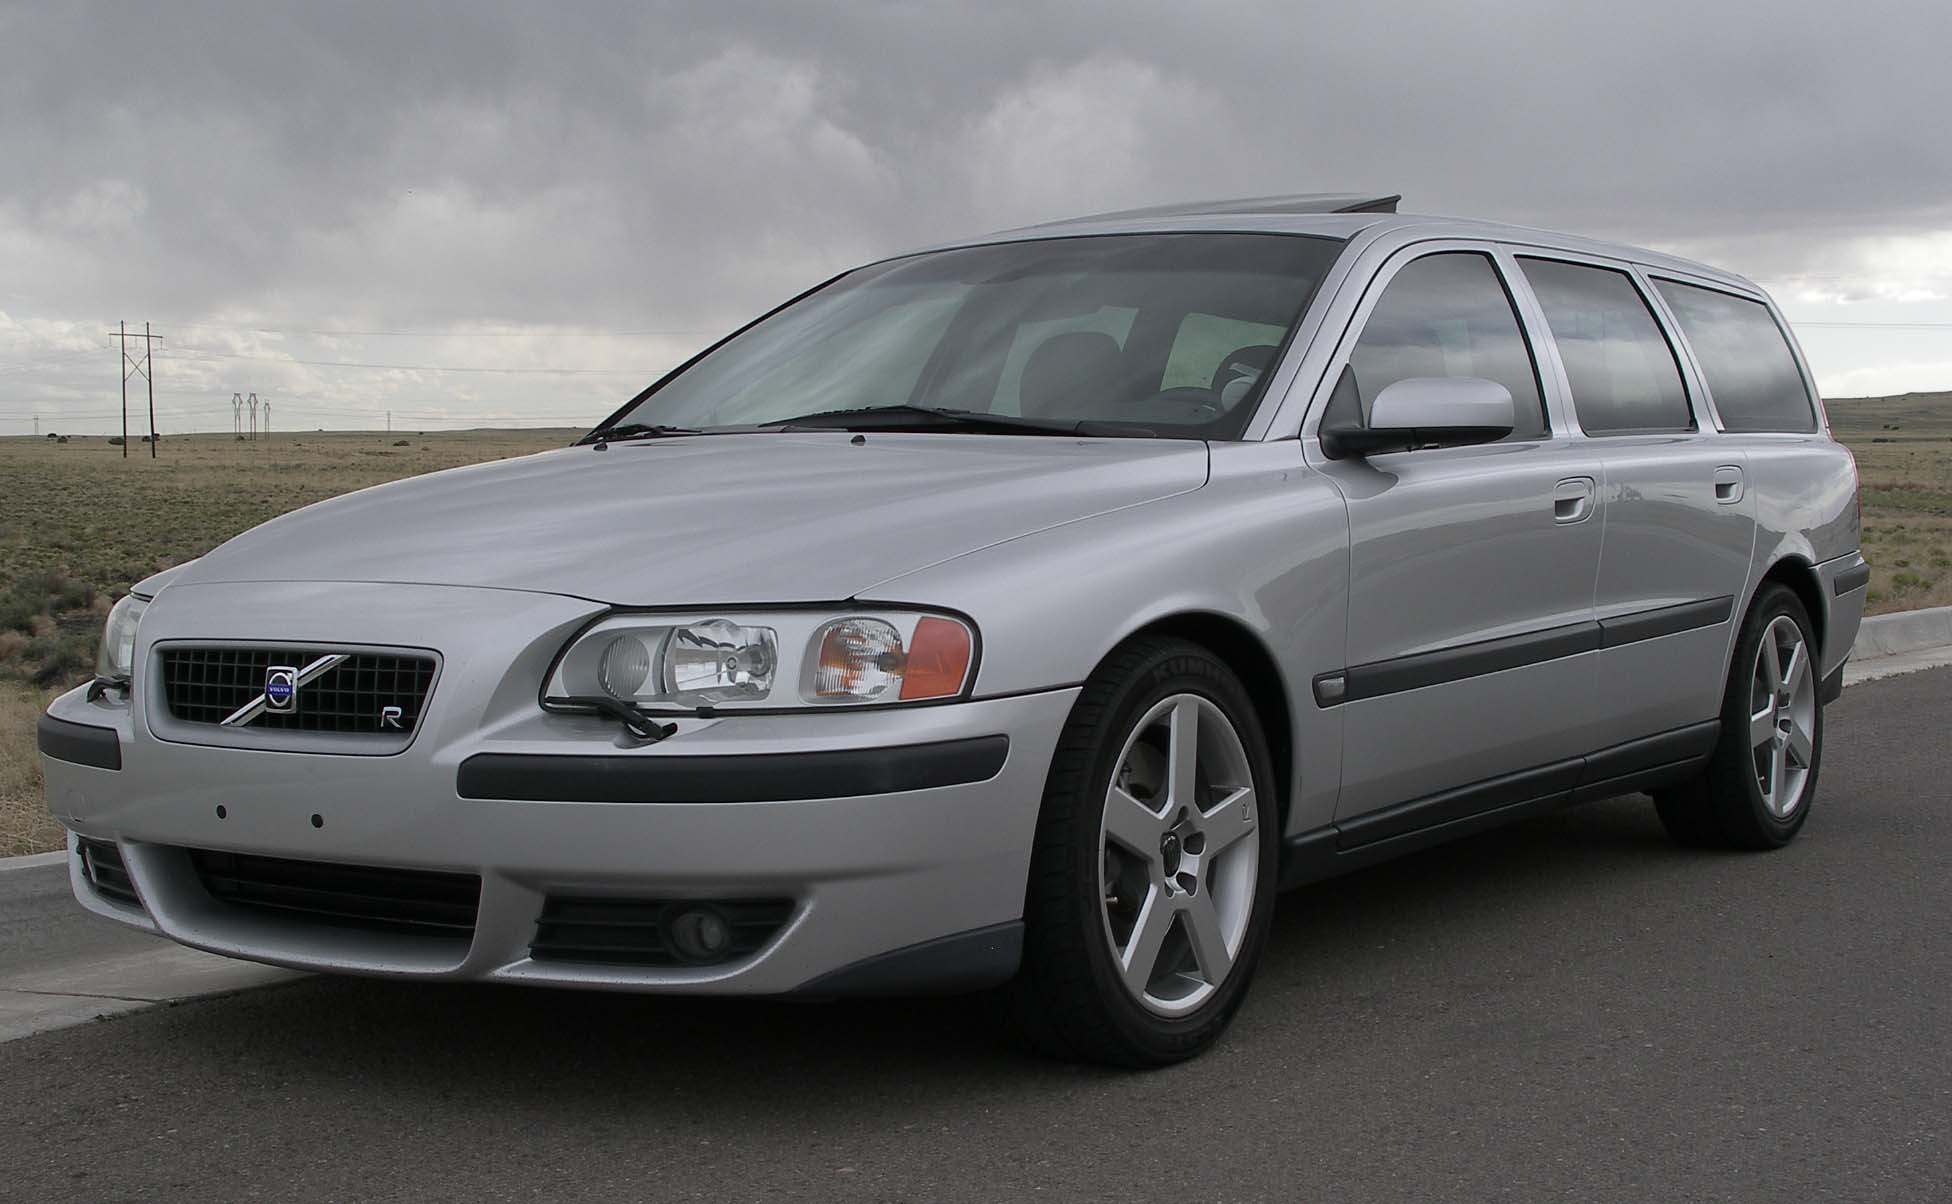 2004  Volvo V70 R AWD picture, mods, upgrades